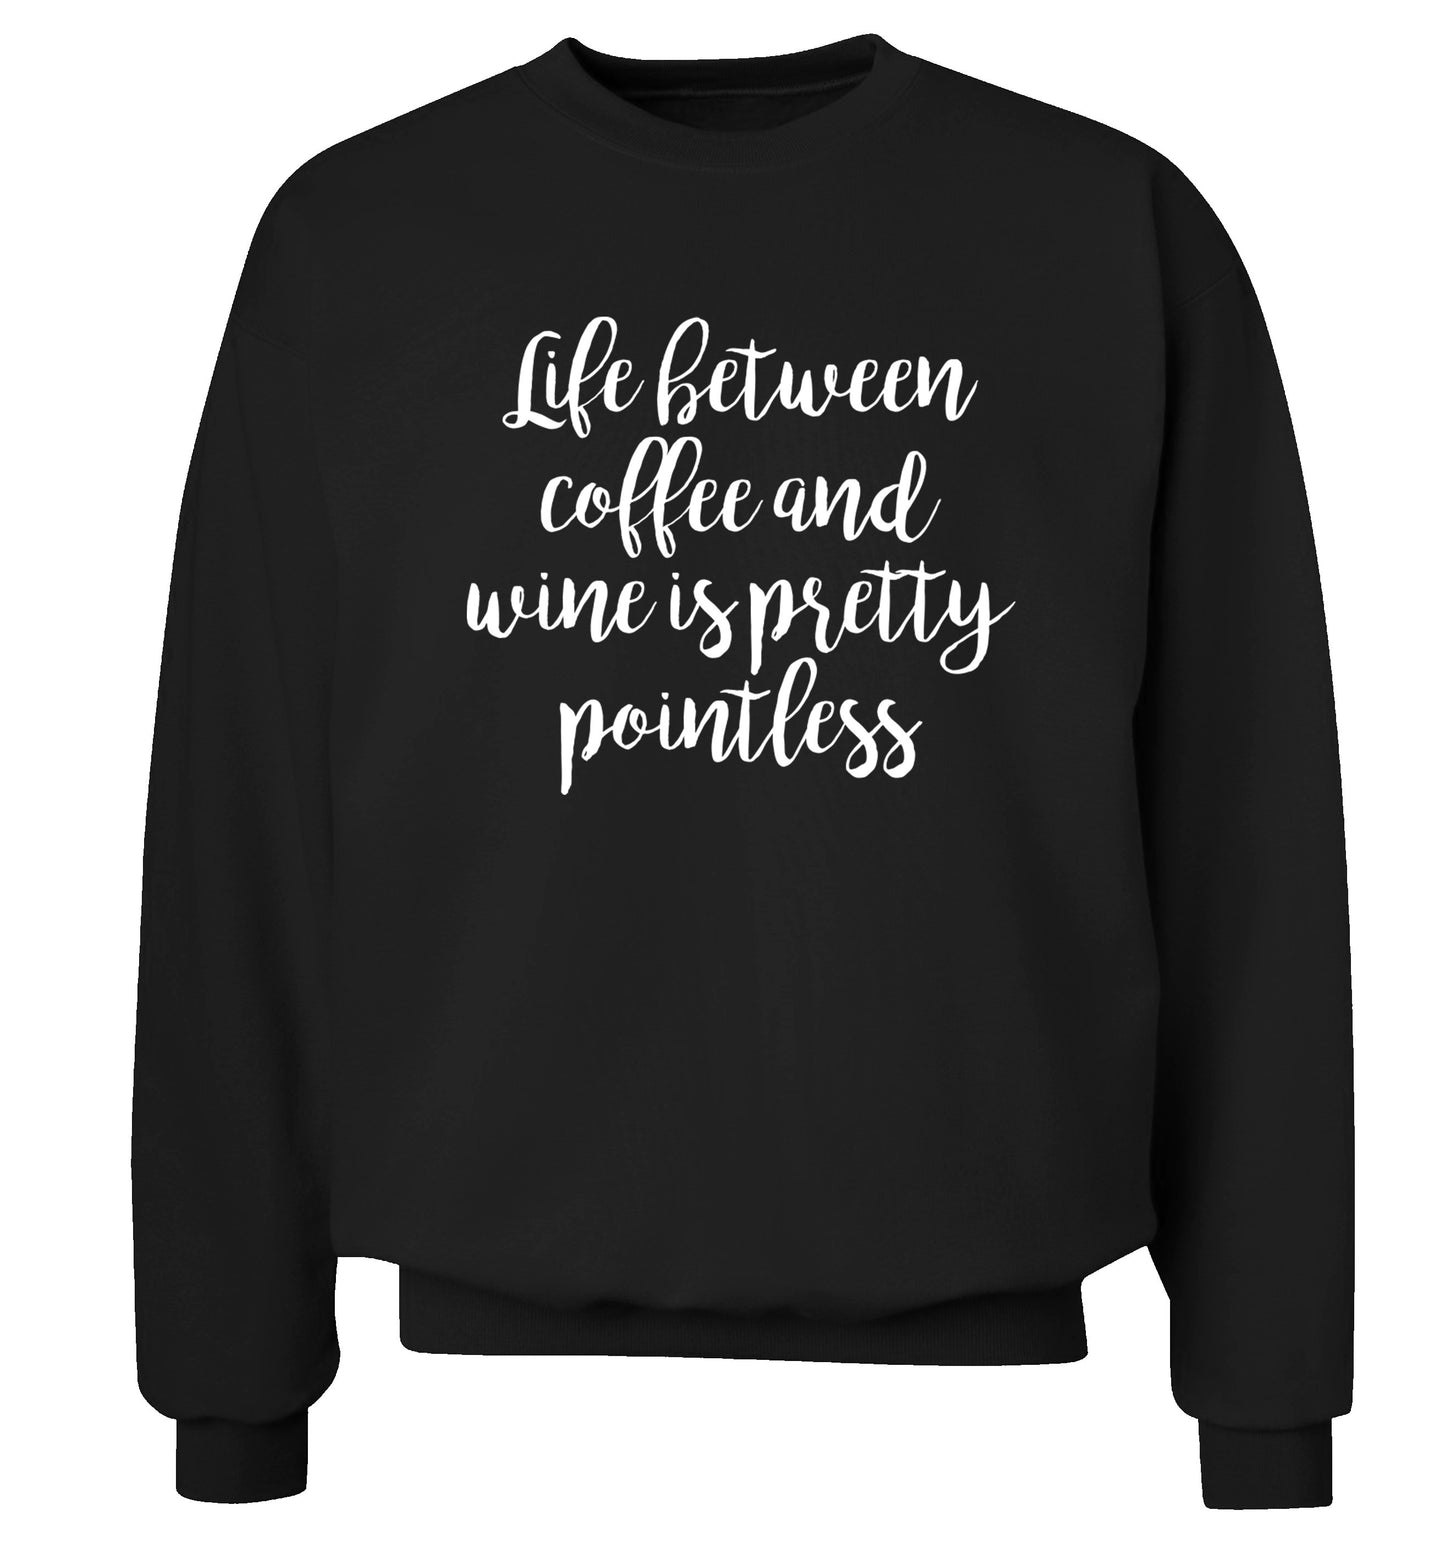 Life between coffee and wine is pretty pointless Adult's unisex black Sweater 2XL